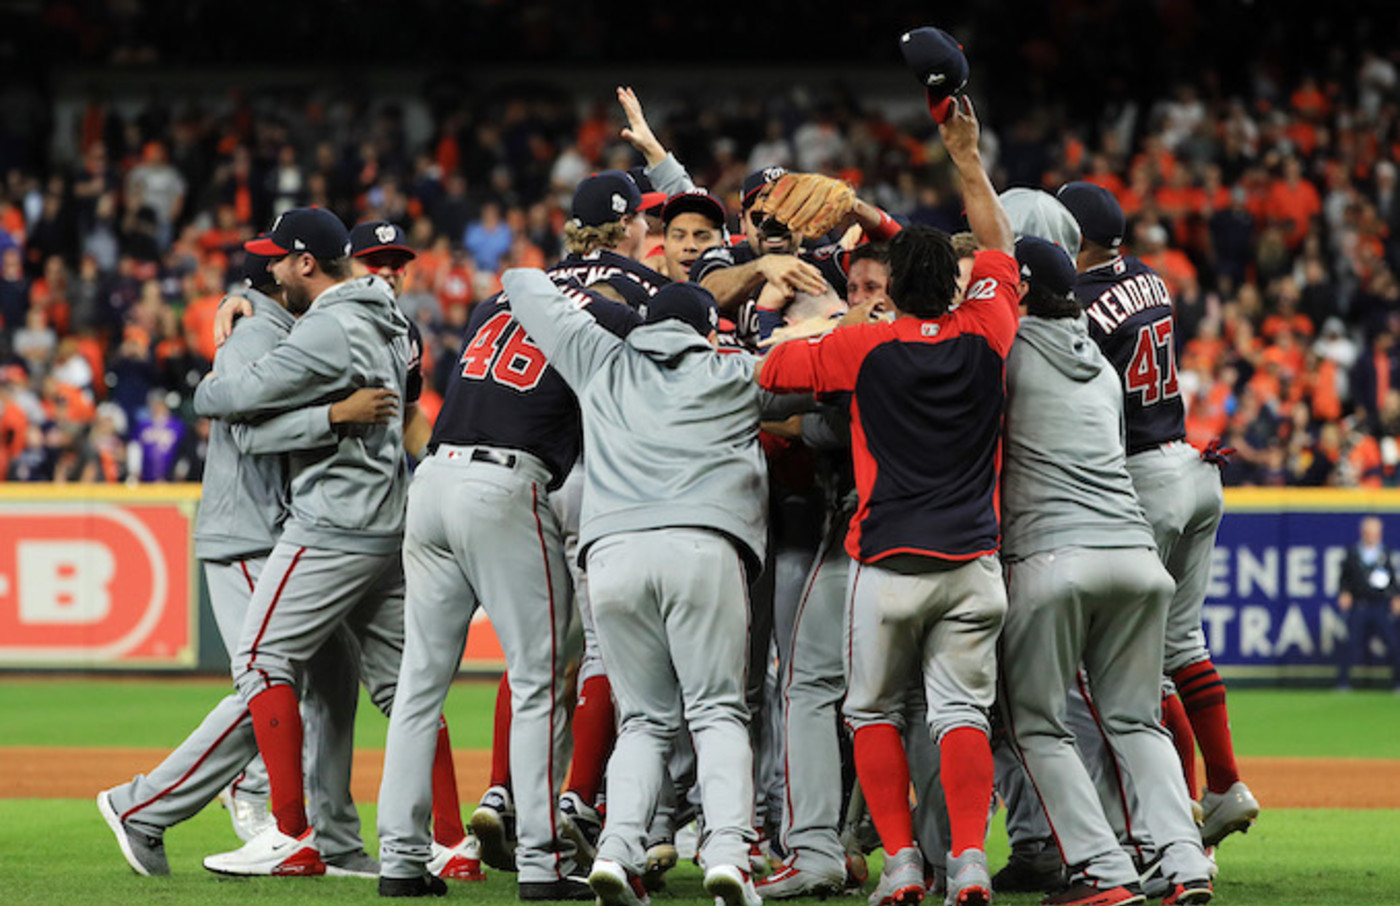 nationals-win-world-series